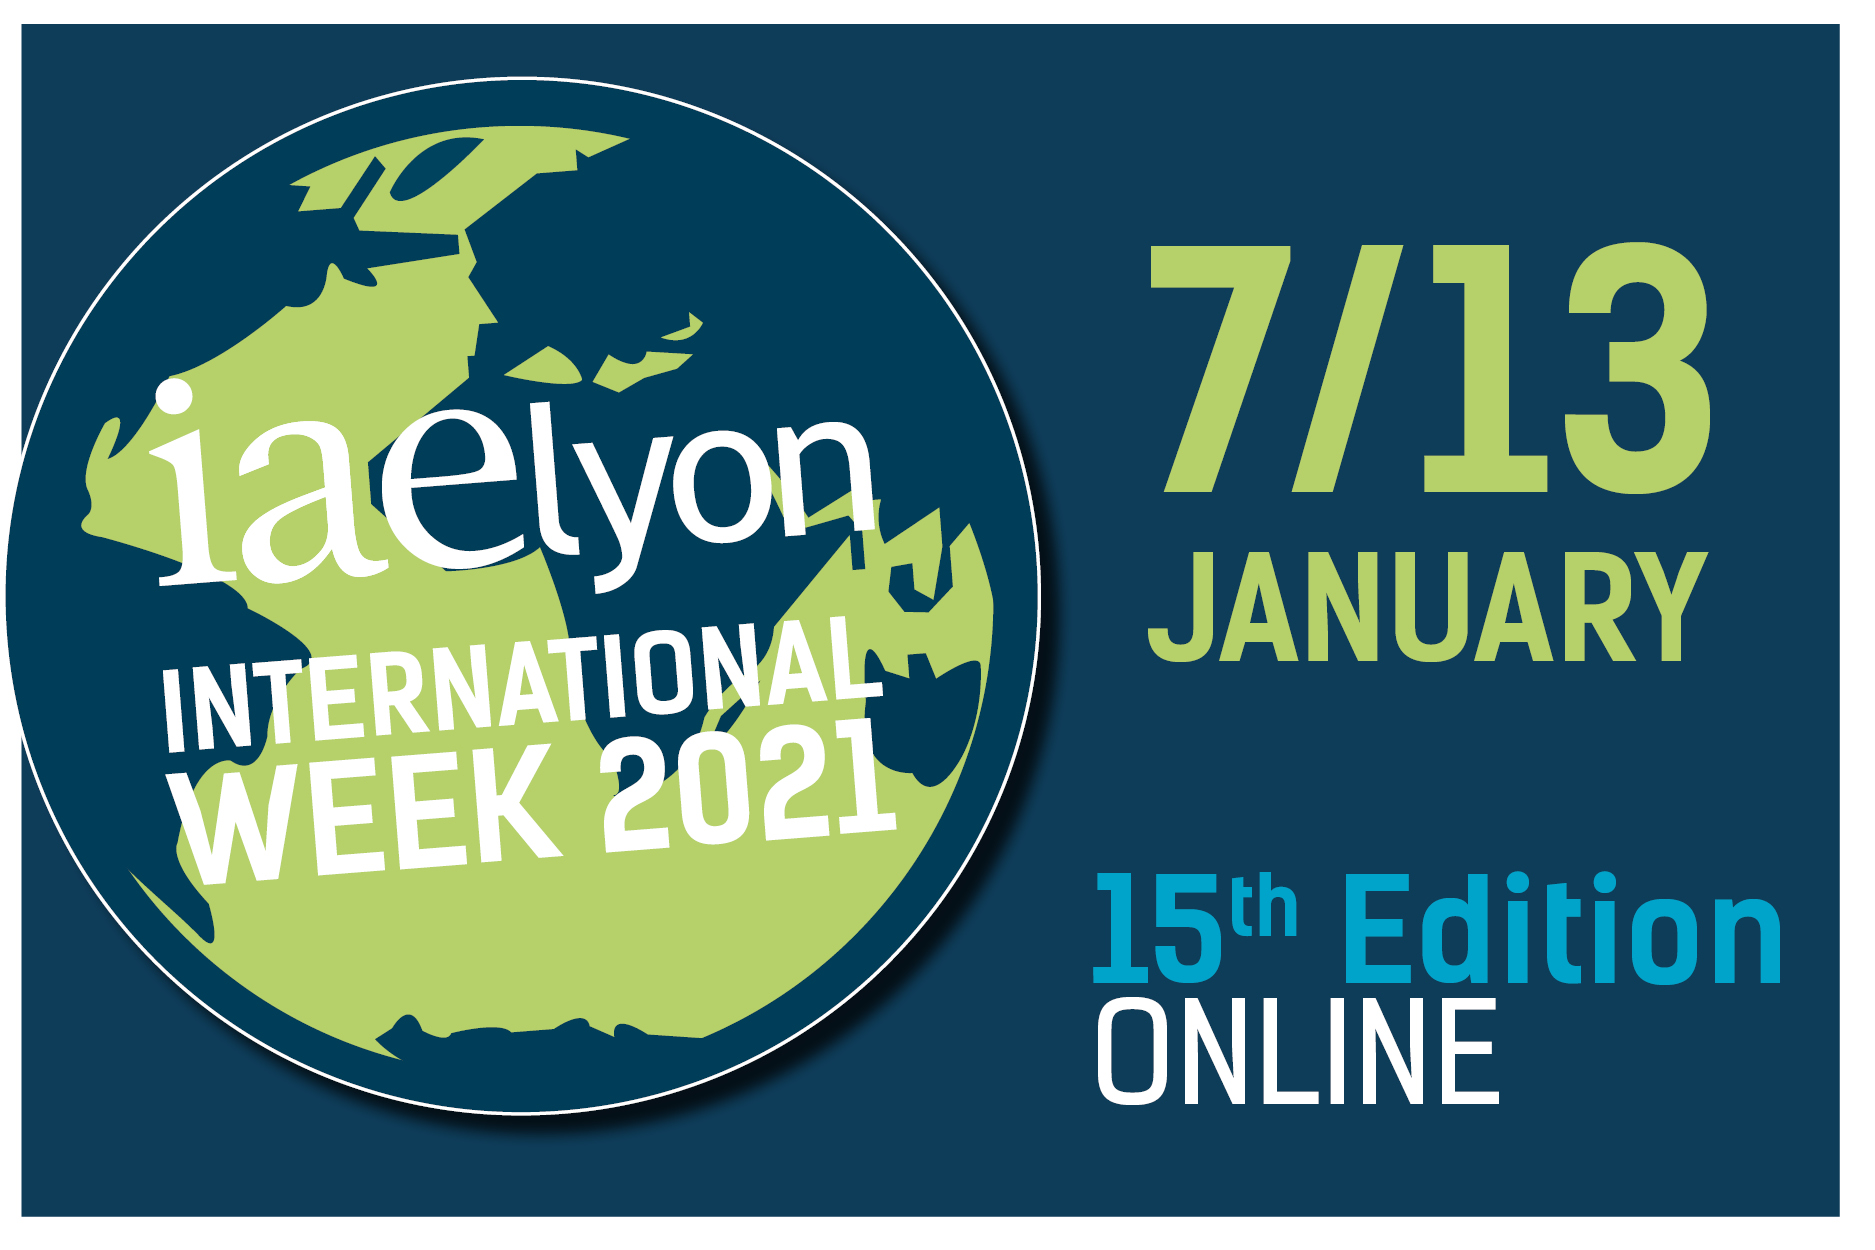 iaelyon International Week 2021 online